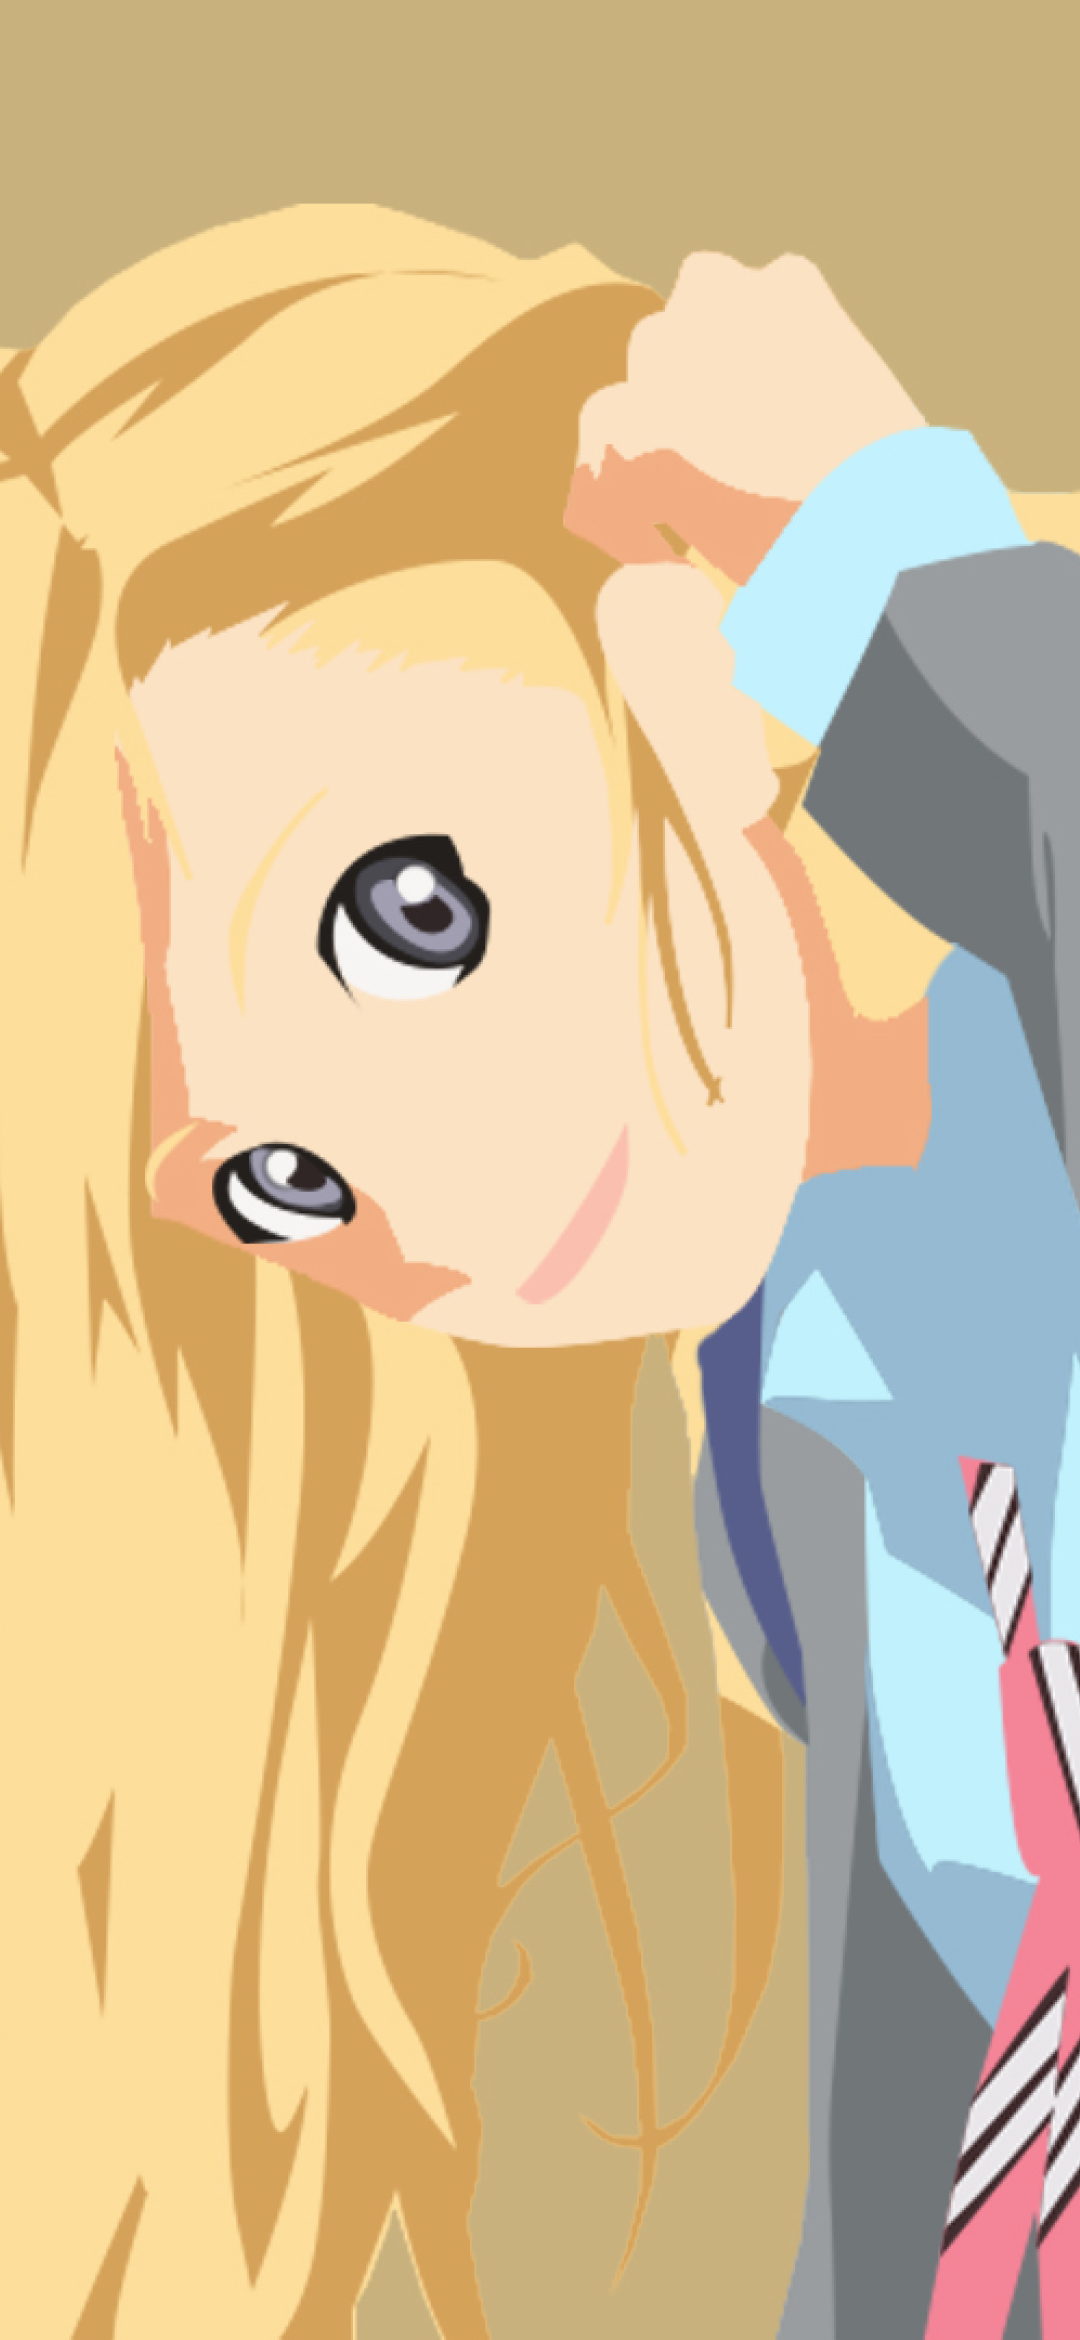 1080x2340 Kaori Miyazono 1080x2340 Resolution Wallpaper Hd Anime